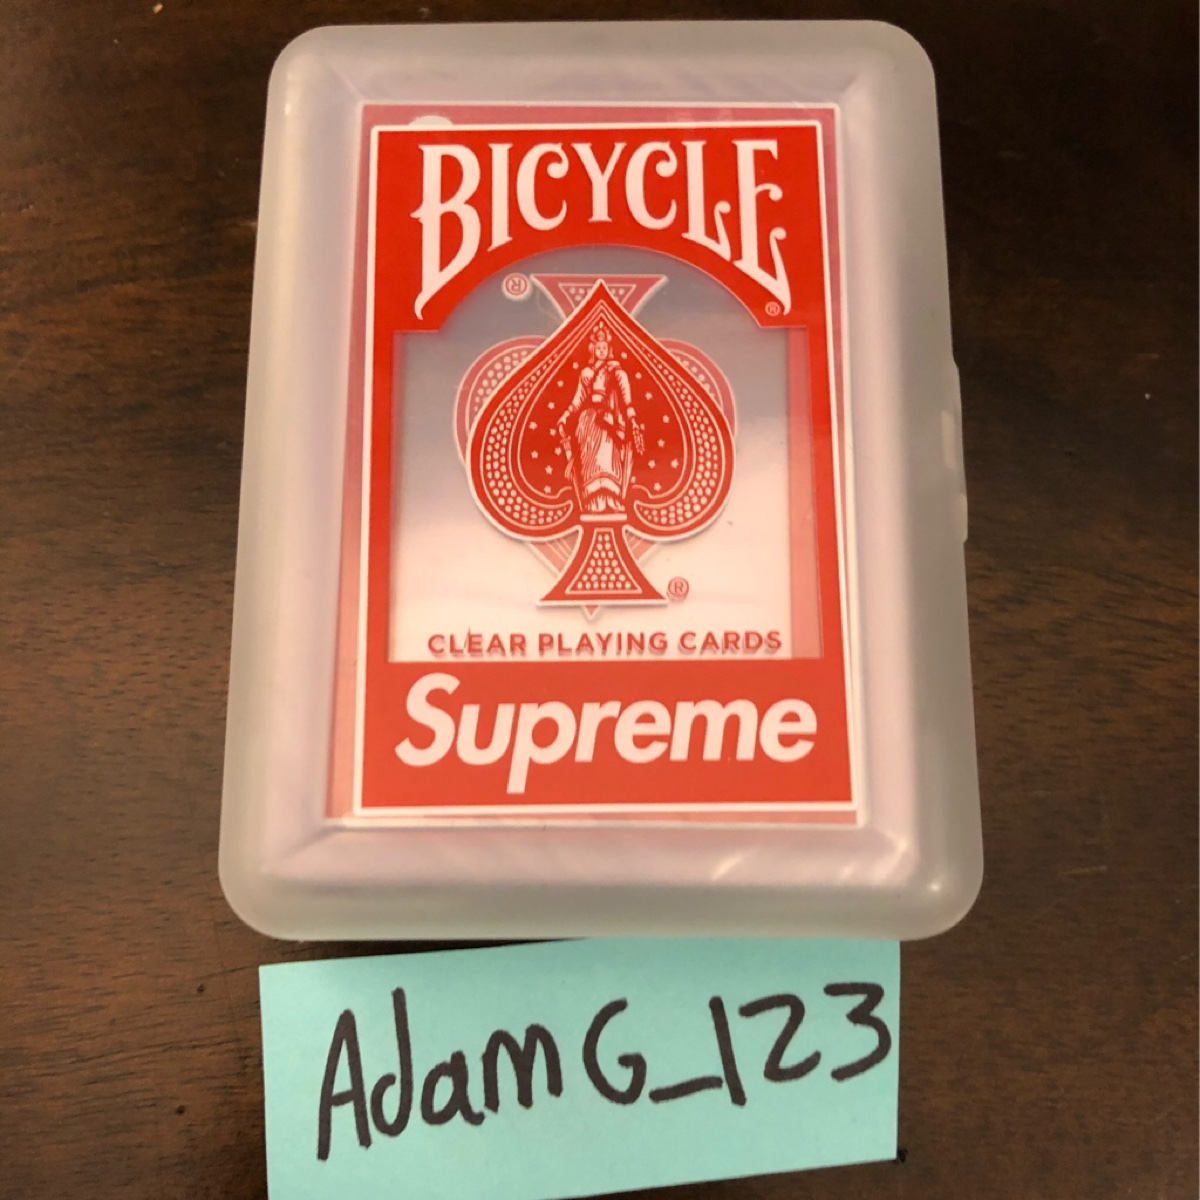 Supreme Bicycle Clear Paying Cards